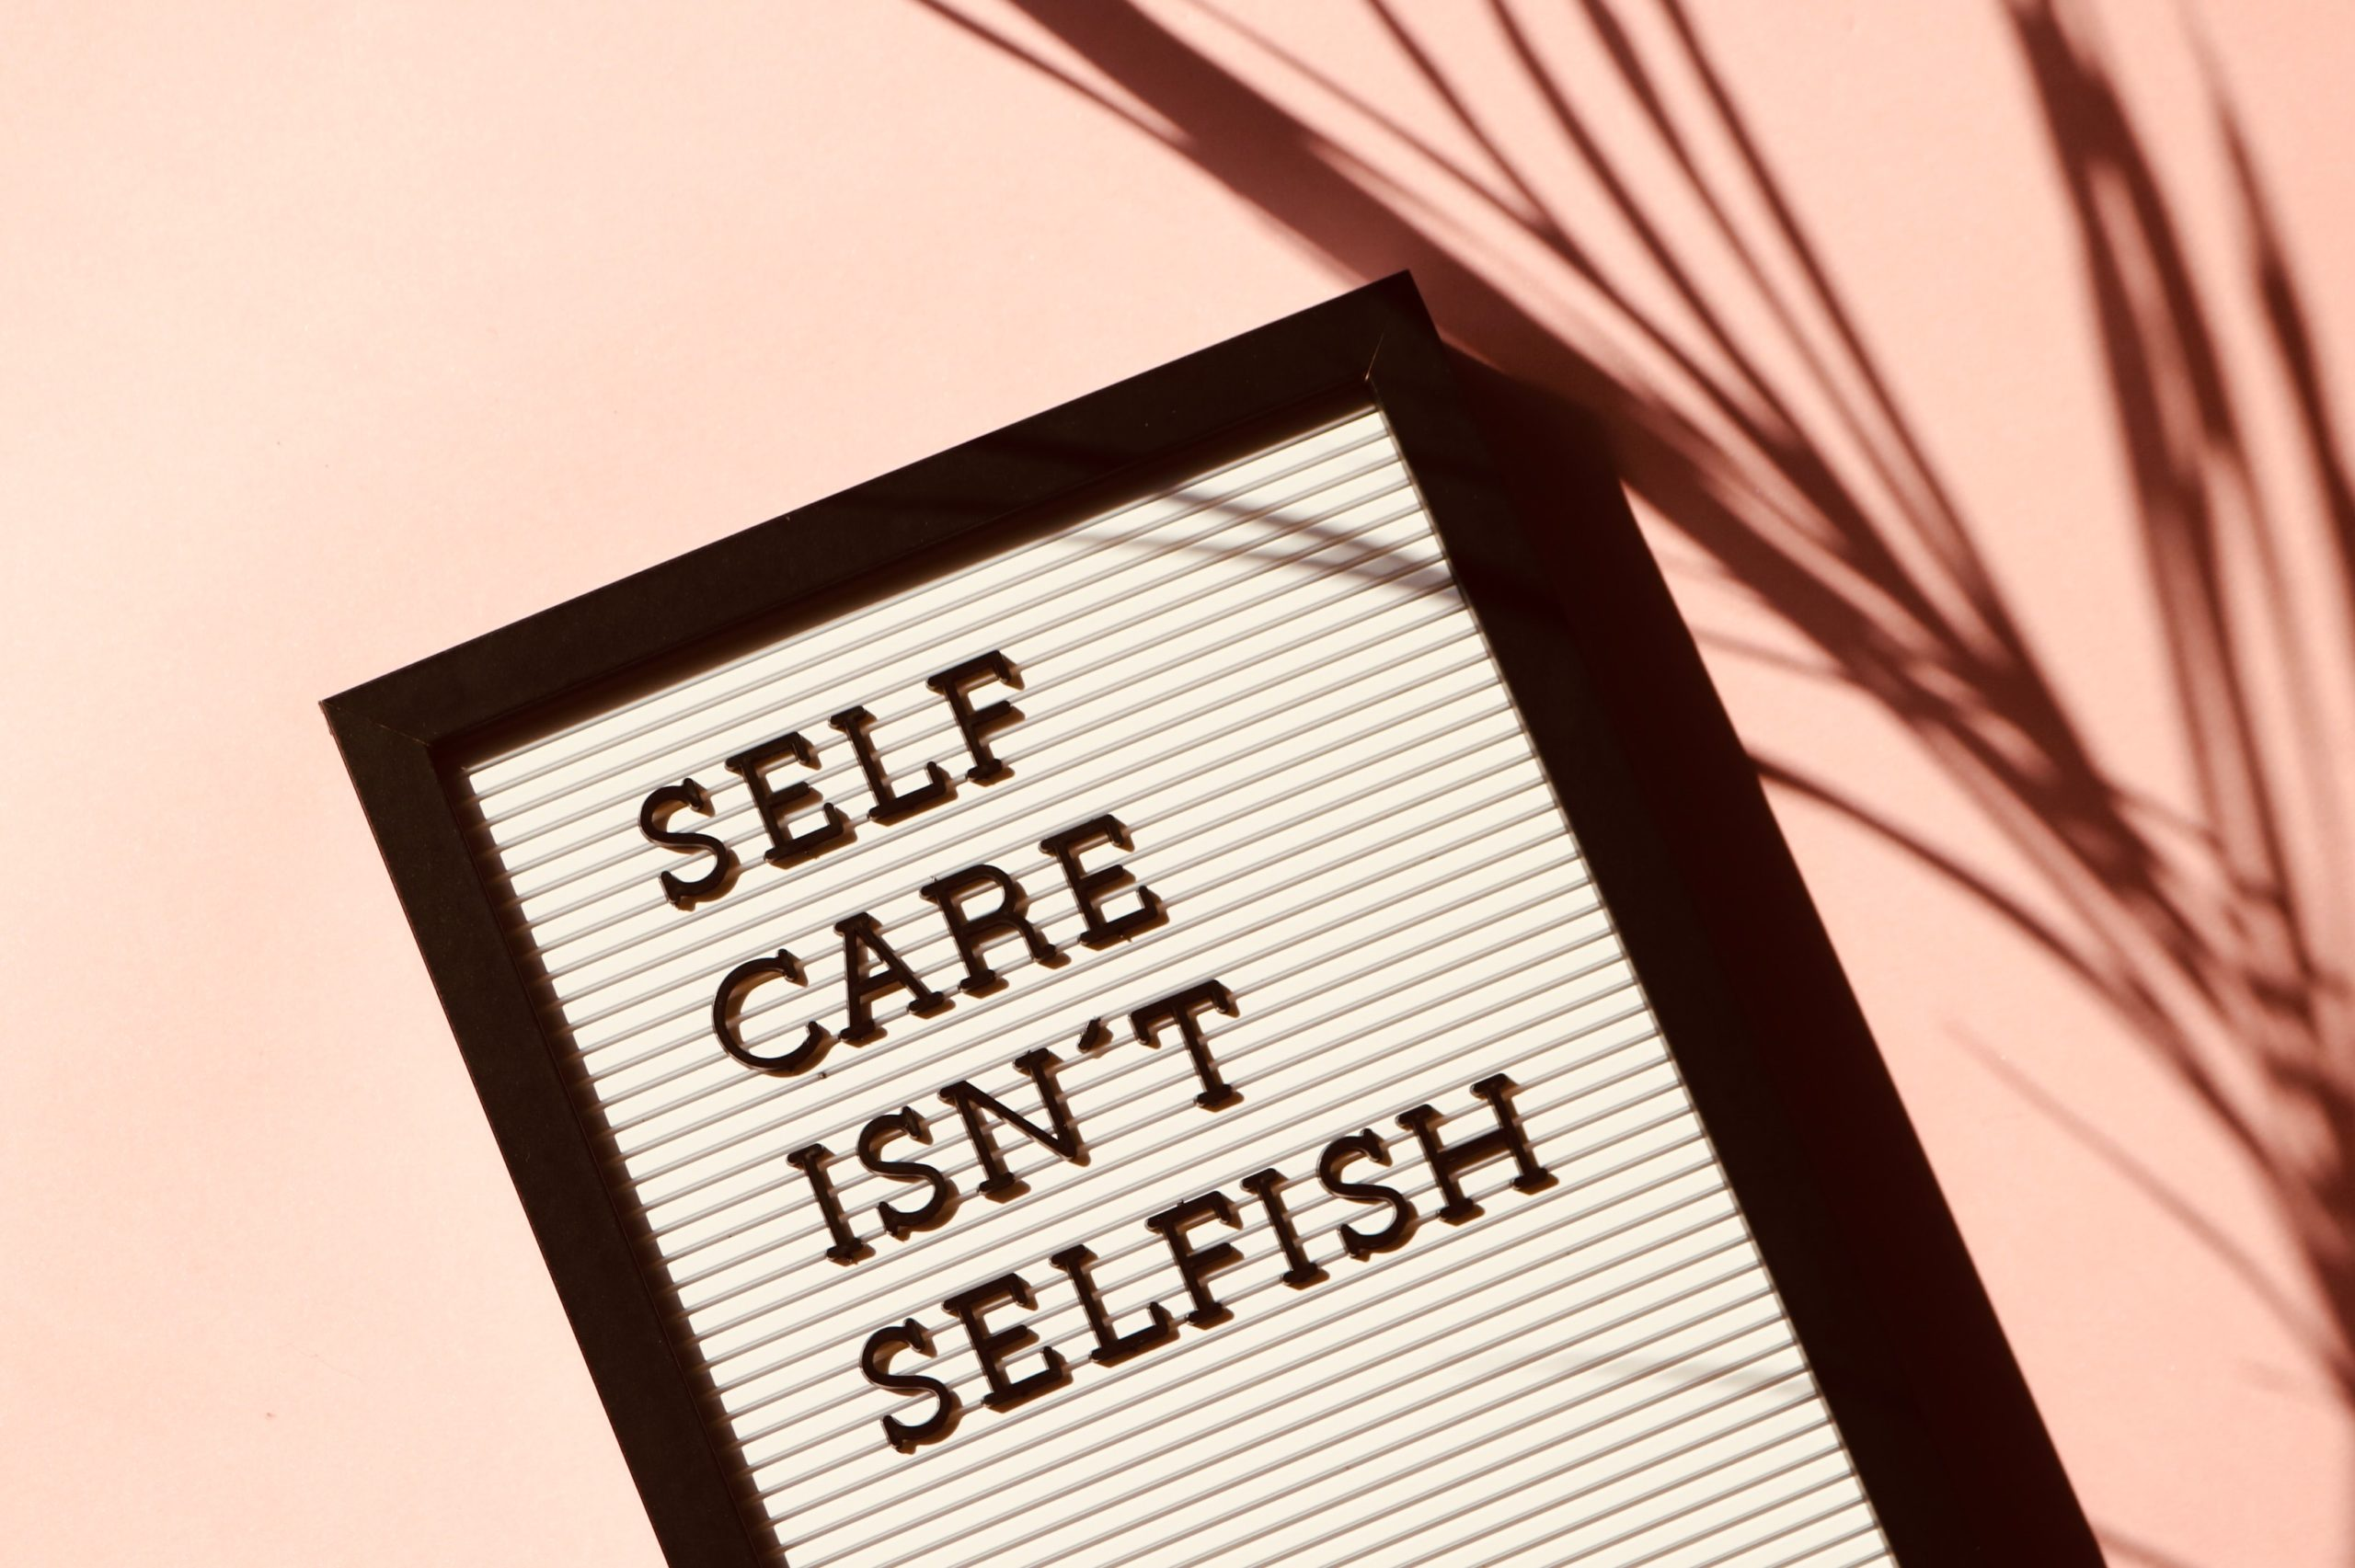 Letterboard stating that self-care isn't selfish.